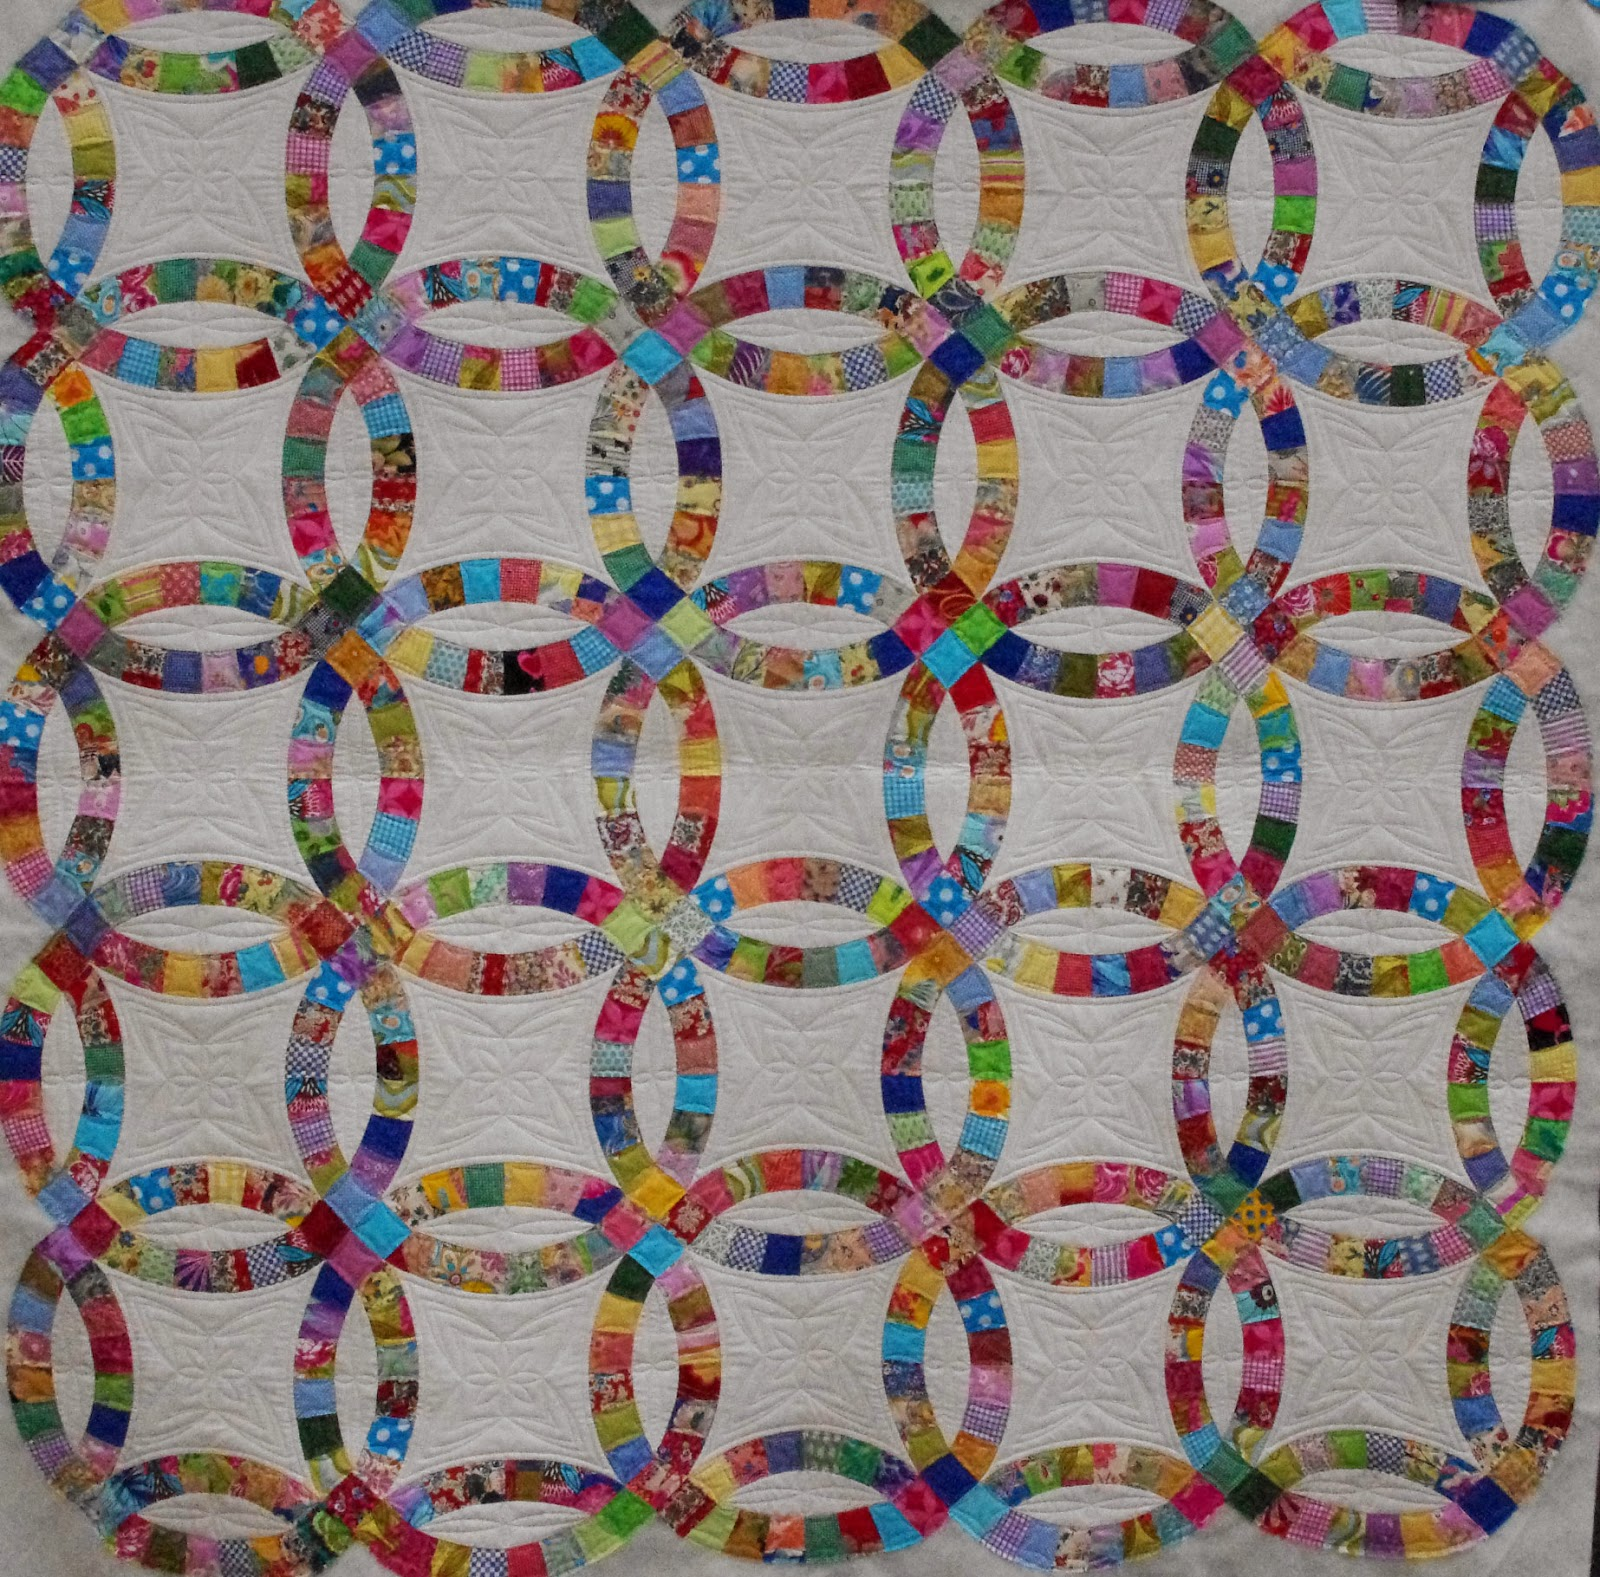 quilts on bastings: double wedding ring quilt